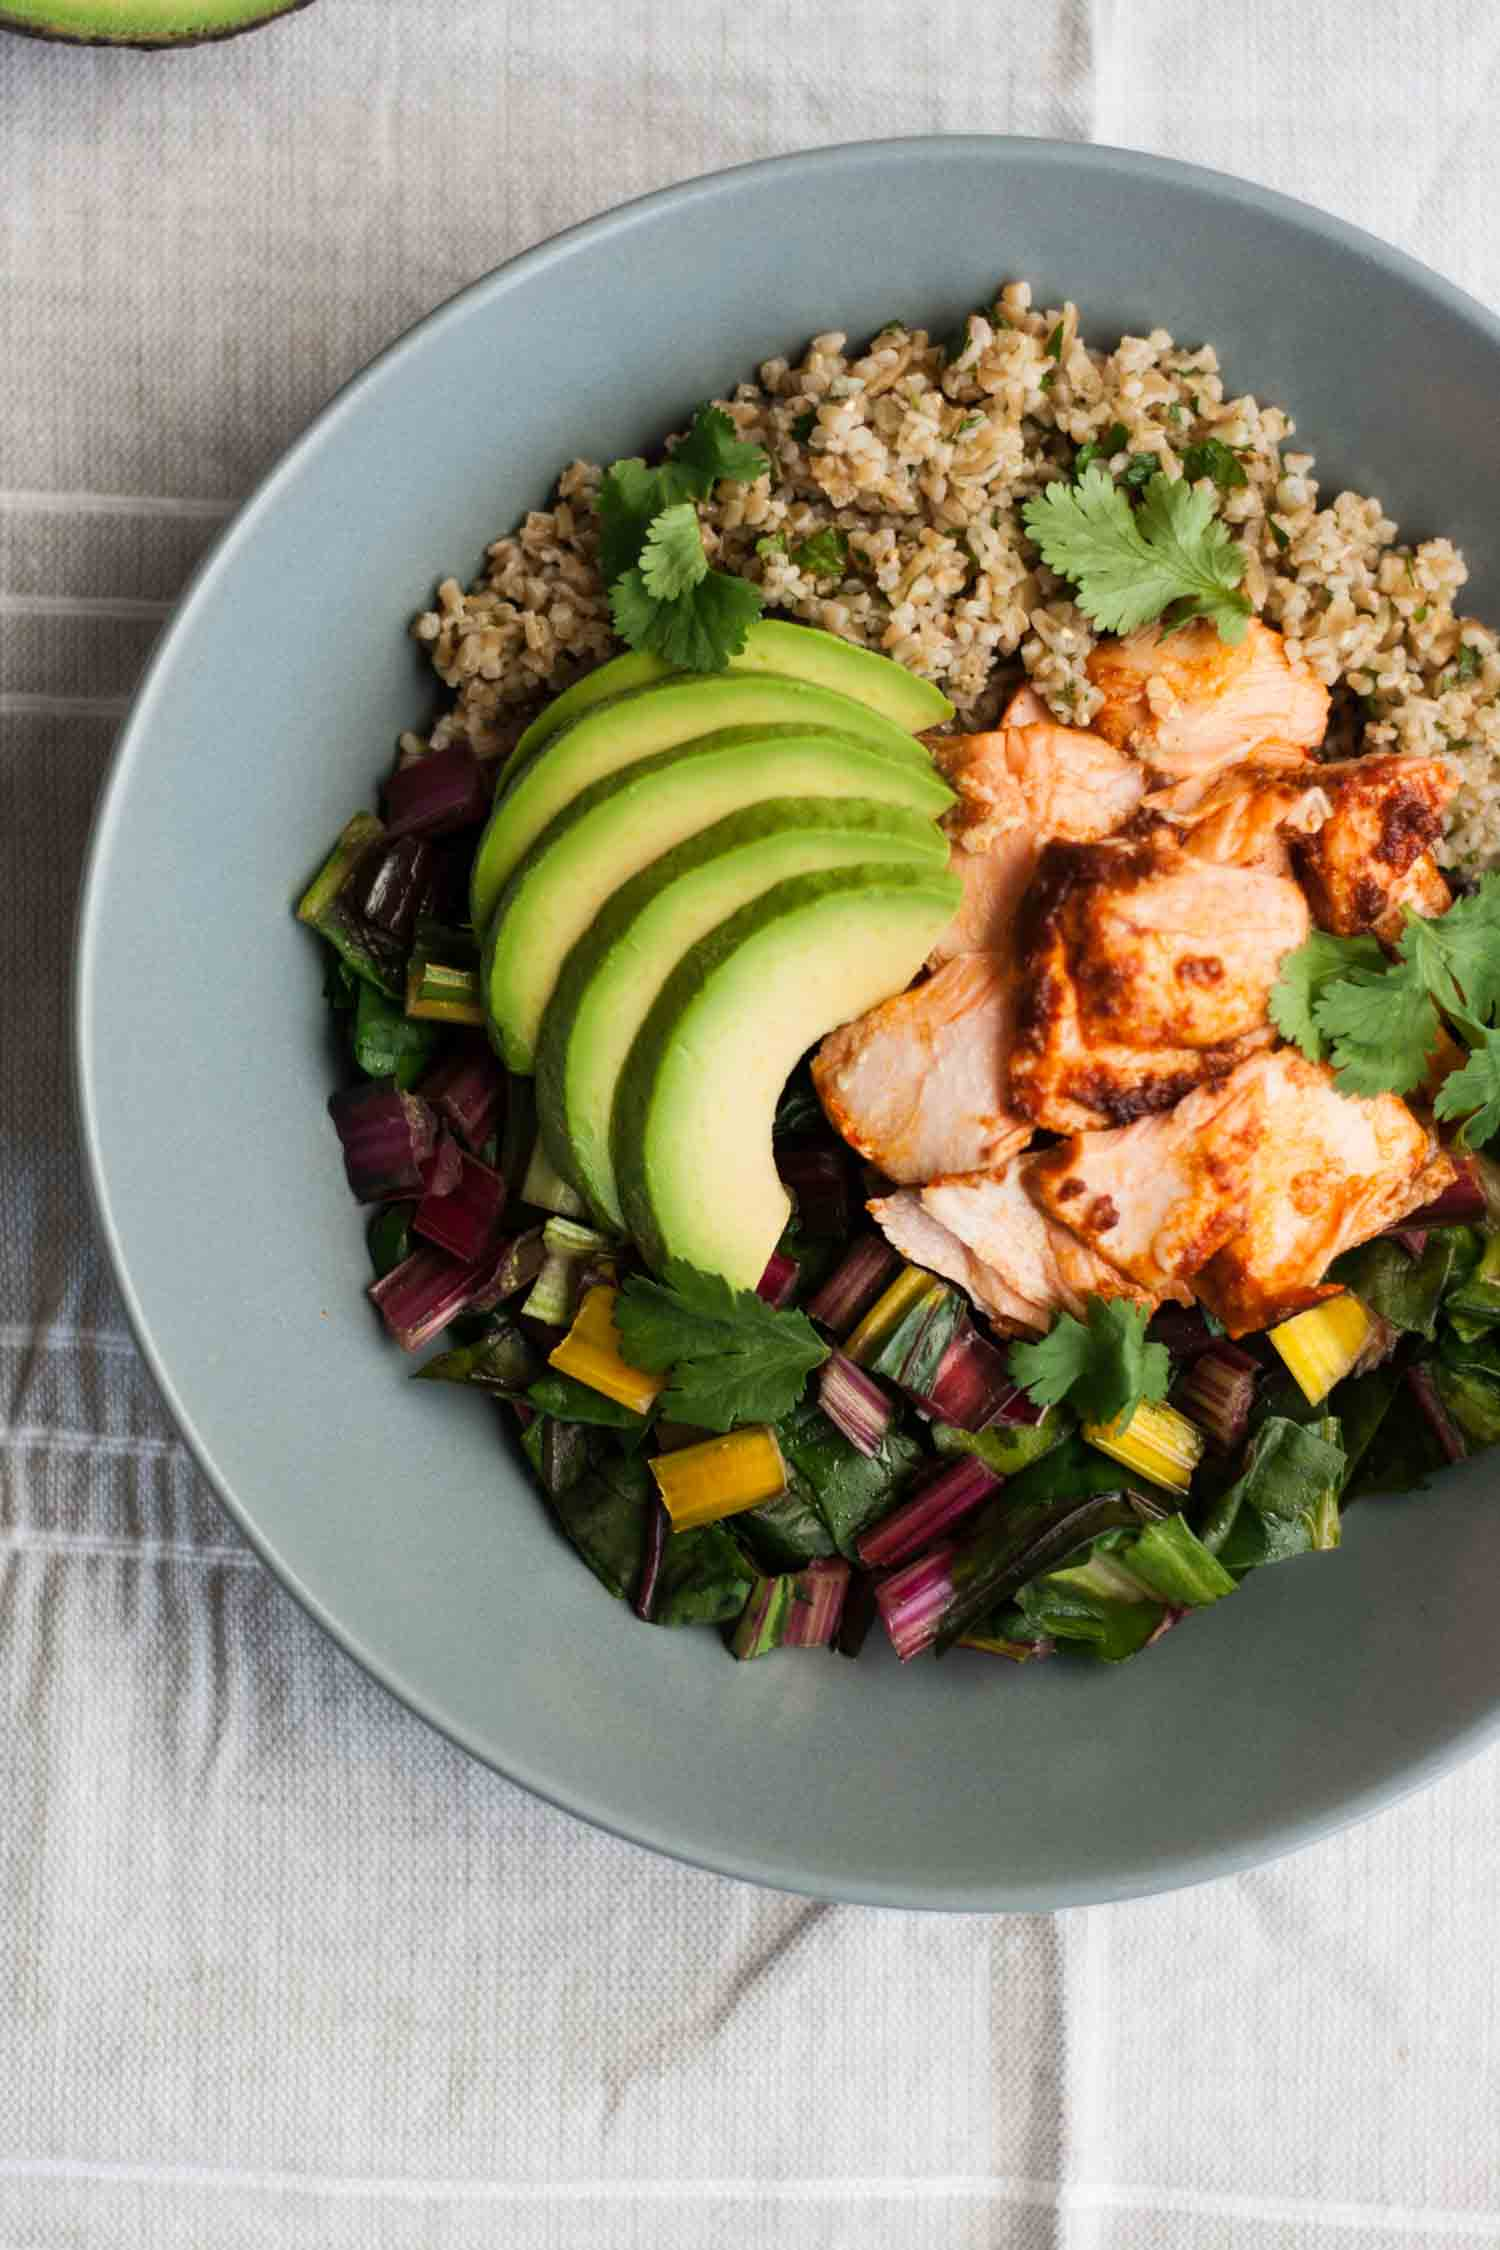 Baked Chipotle Salmon Freekeh Bowls - delicious bowls of hearty freekeh and garlicky greens topped with moist, smoky salmon - a quick, easy and nutritious lunch or dinner recipe! | eatloveeats.com